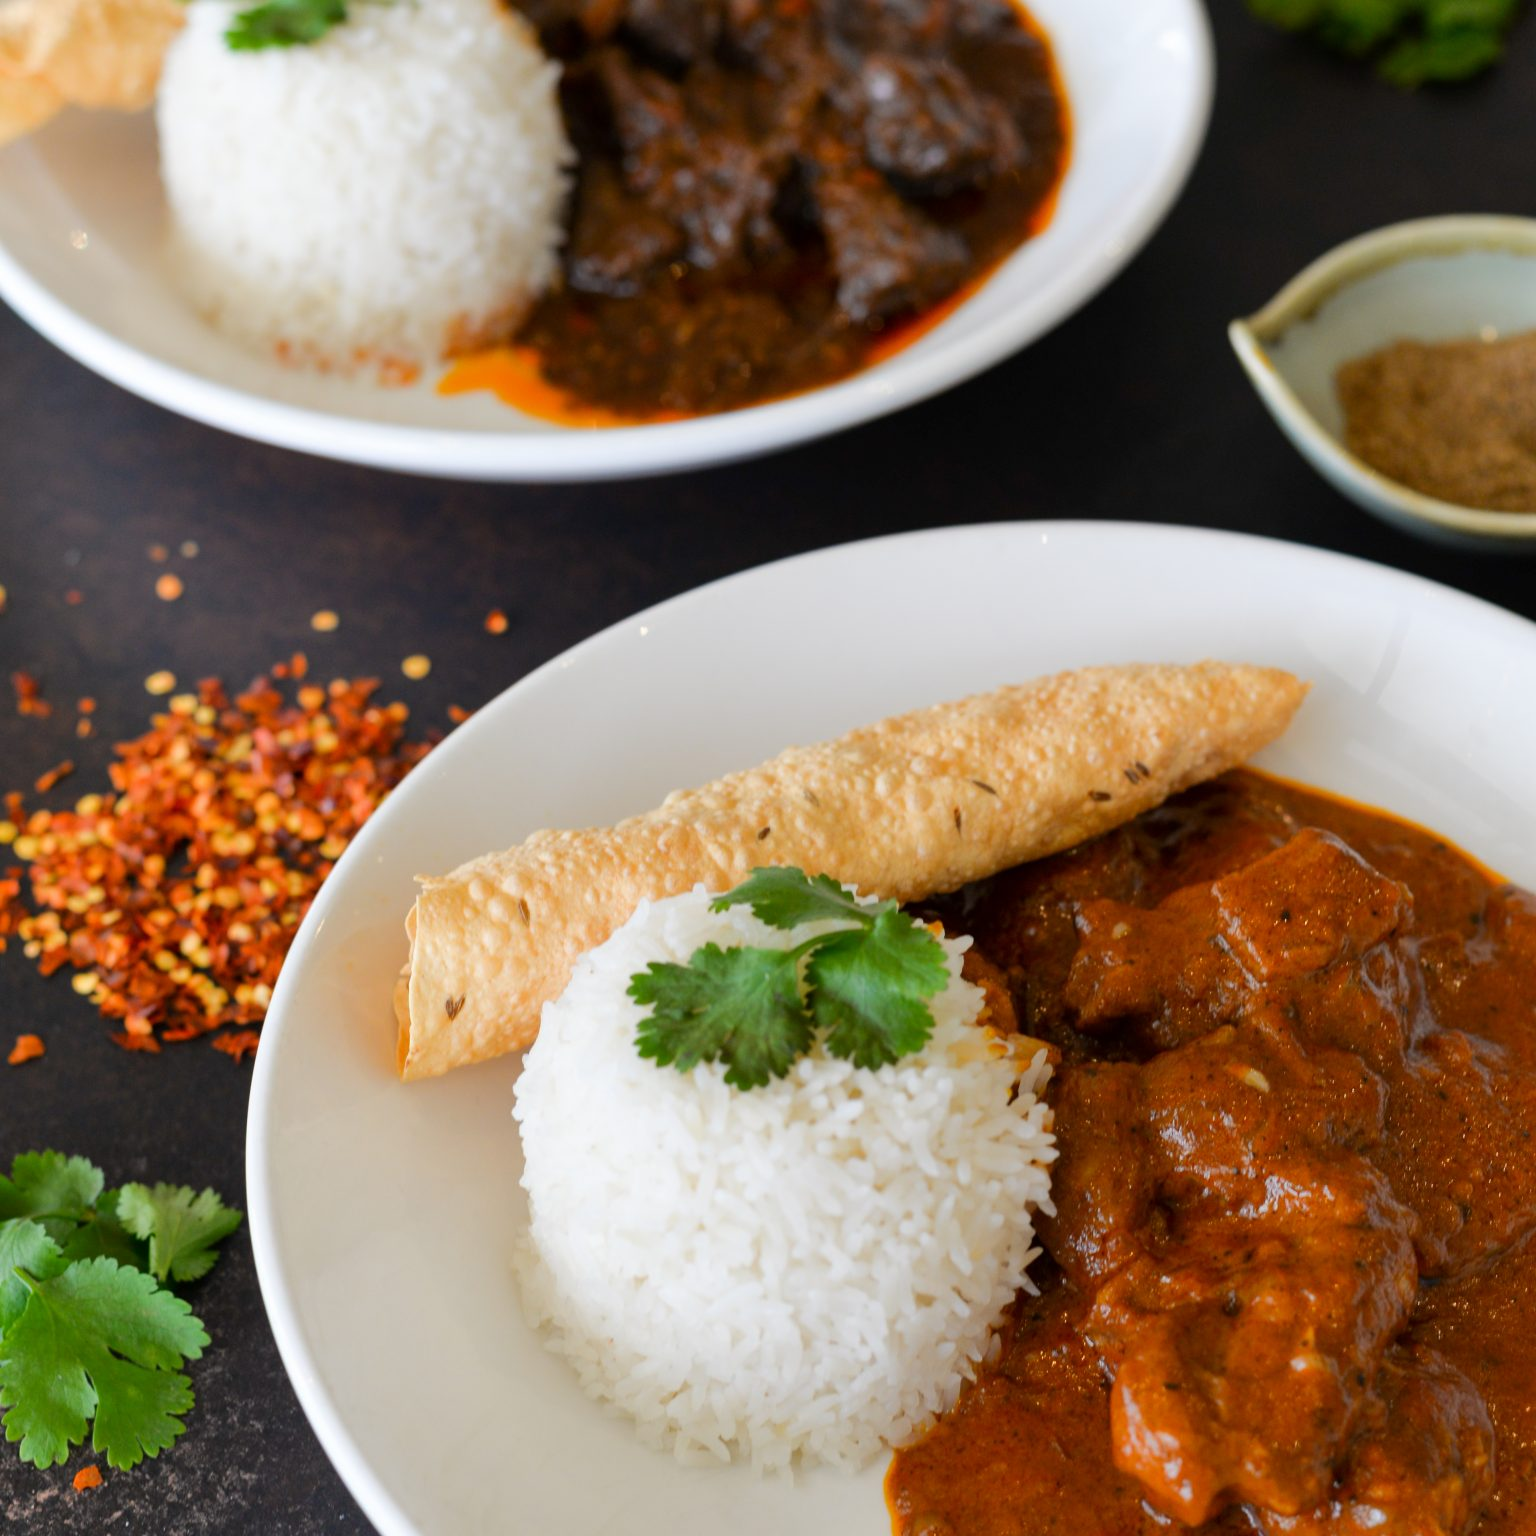 Curry Night at Rowers on Cooks River